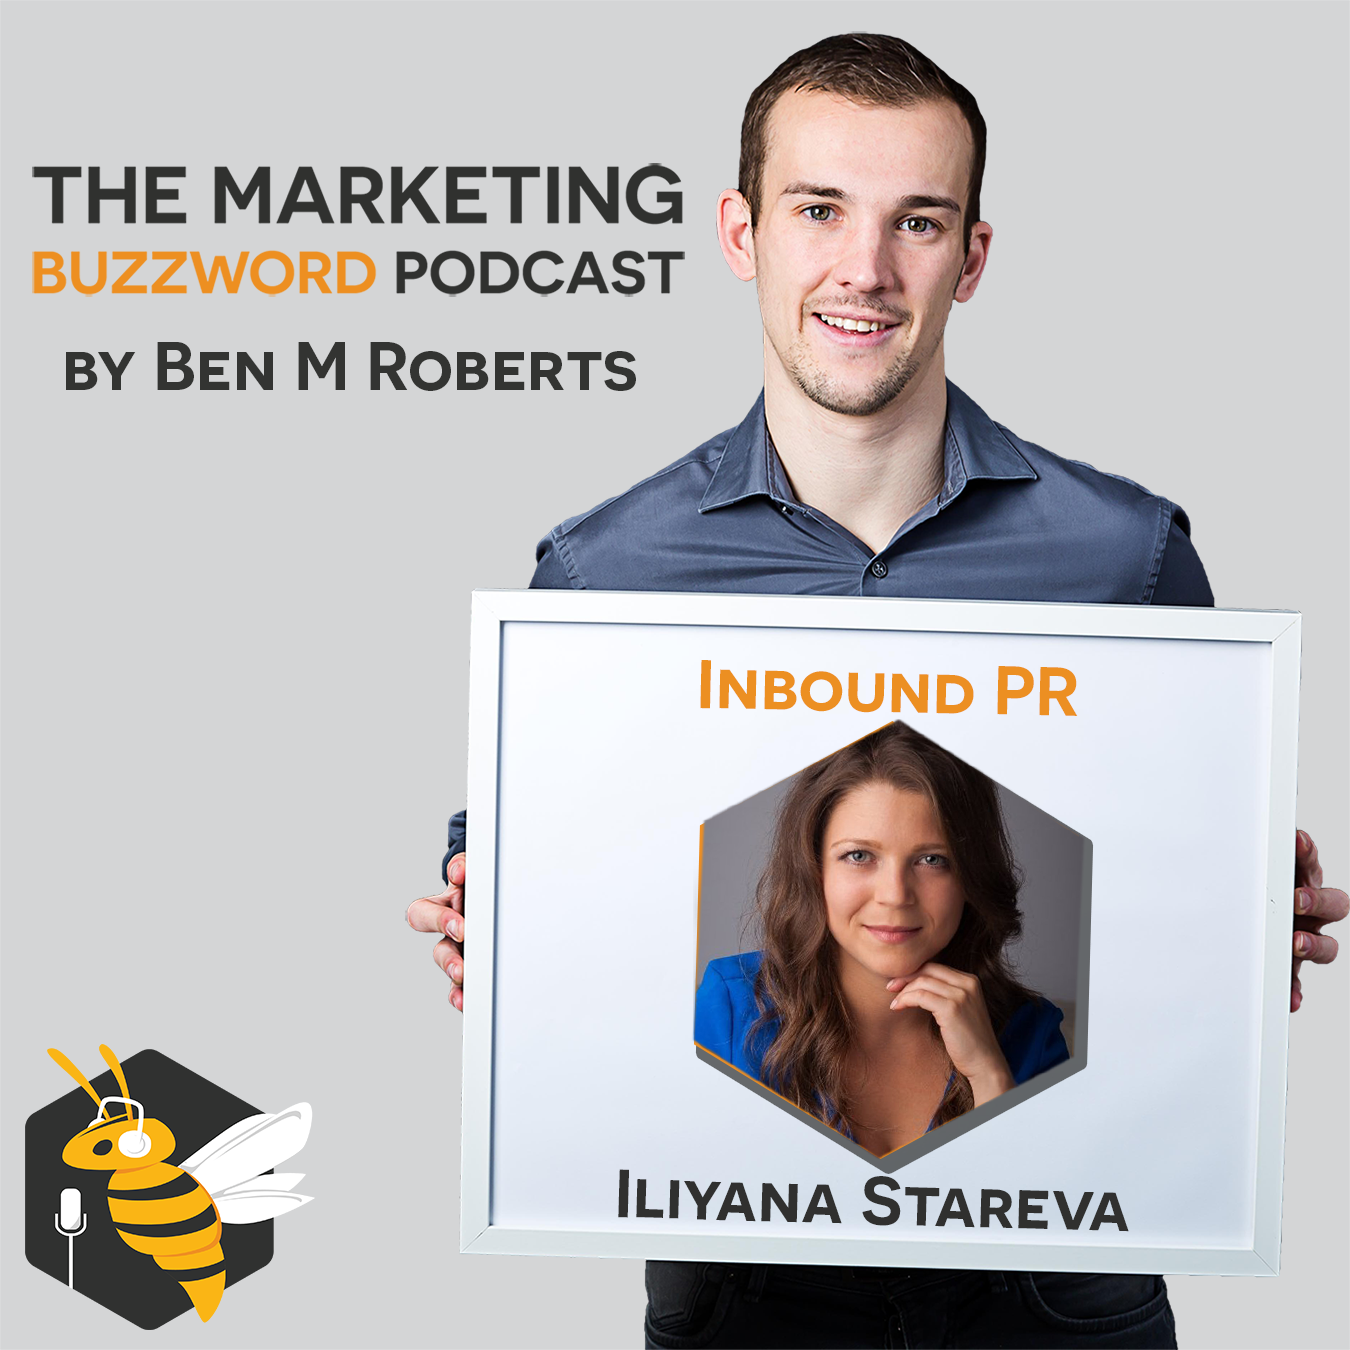 Inbound PR - What is inbound PR? How can we measure the effectiveness of PR? How can pr actually drive inbound leads into a business?